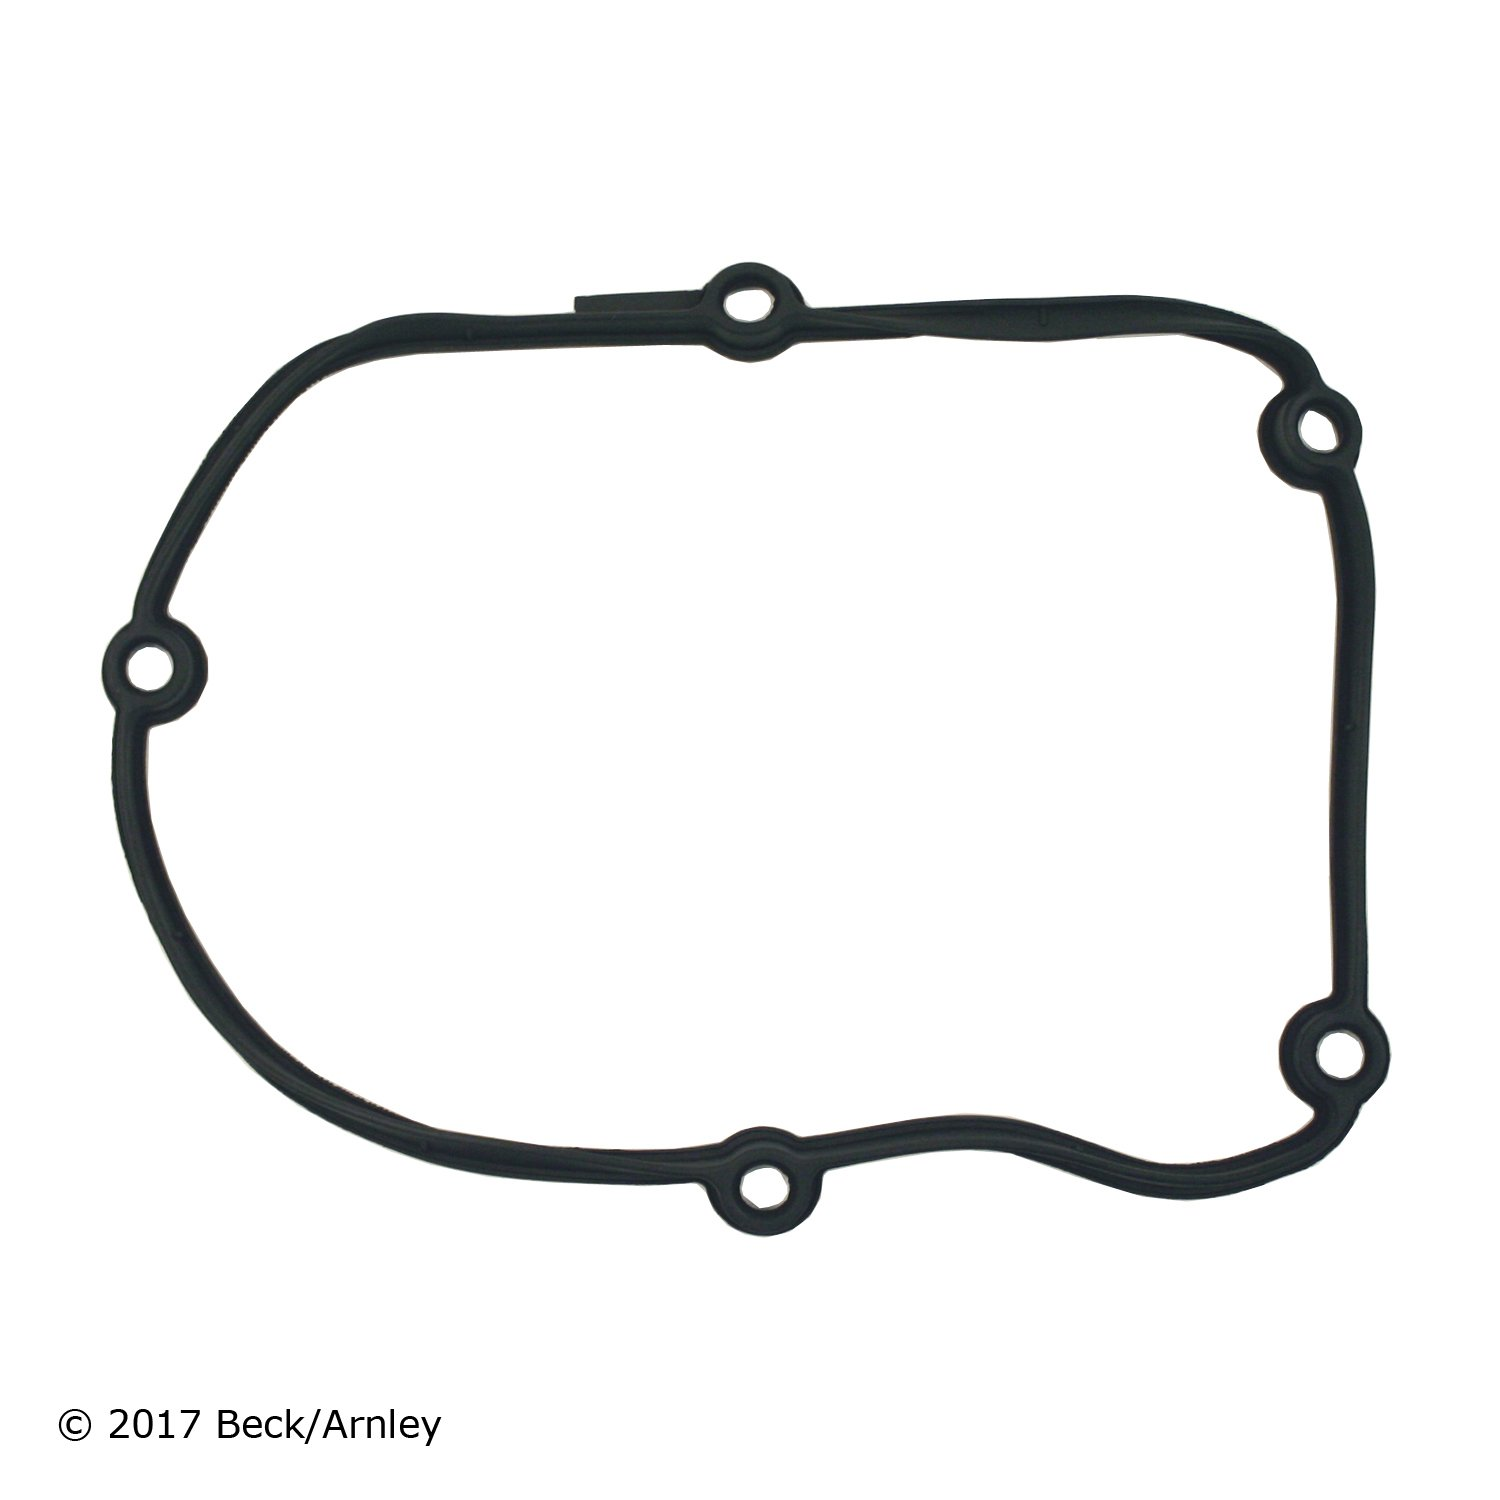 24 041 37-S B Blesiya Cylinder Head Gasket KIT for Kohler Part # 24 841 04-S